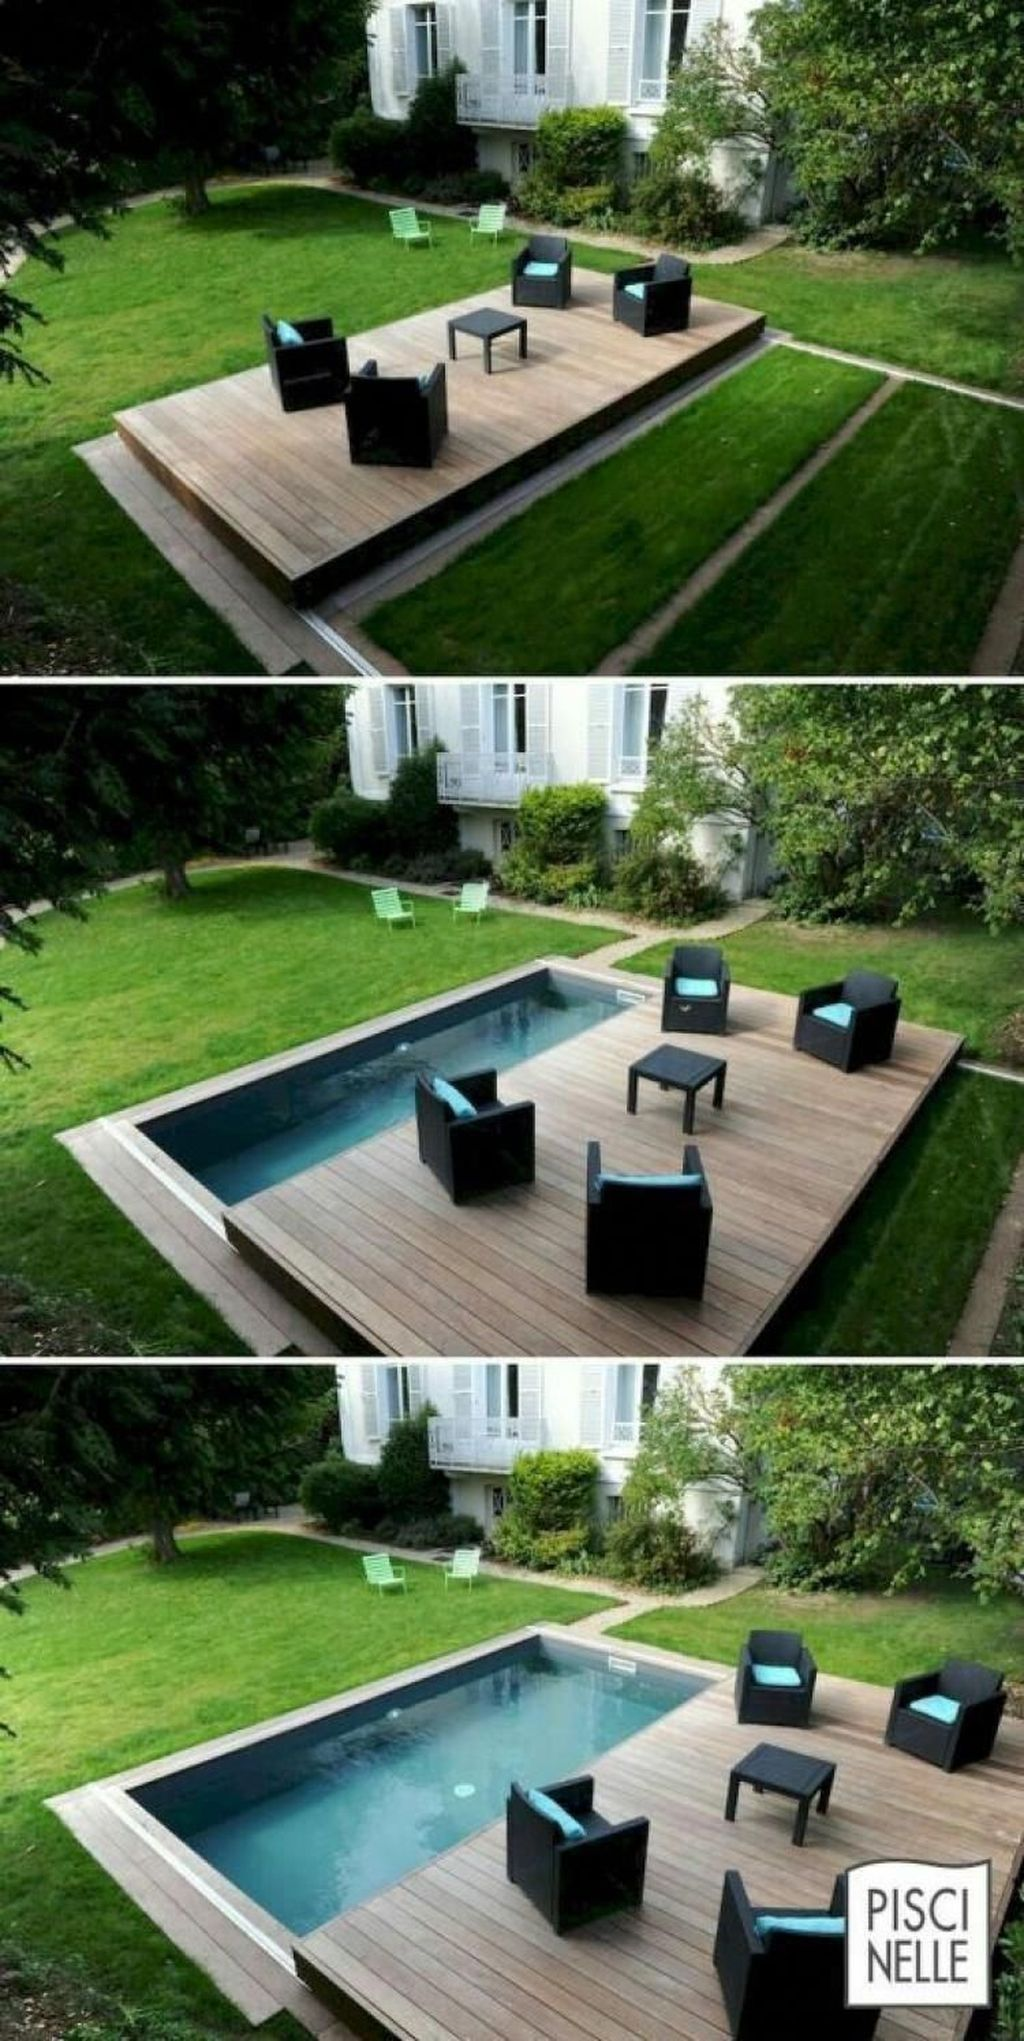 30+ Wonderful Court Yard Landscaping Ideas For Front Yard | Court Yard. The very...